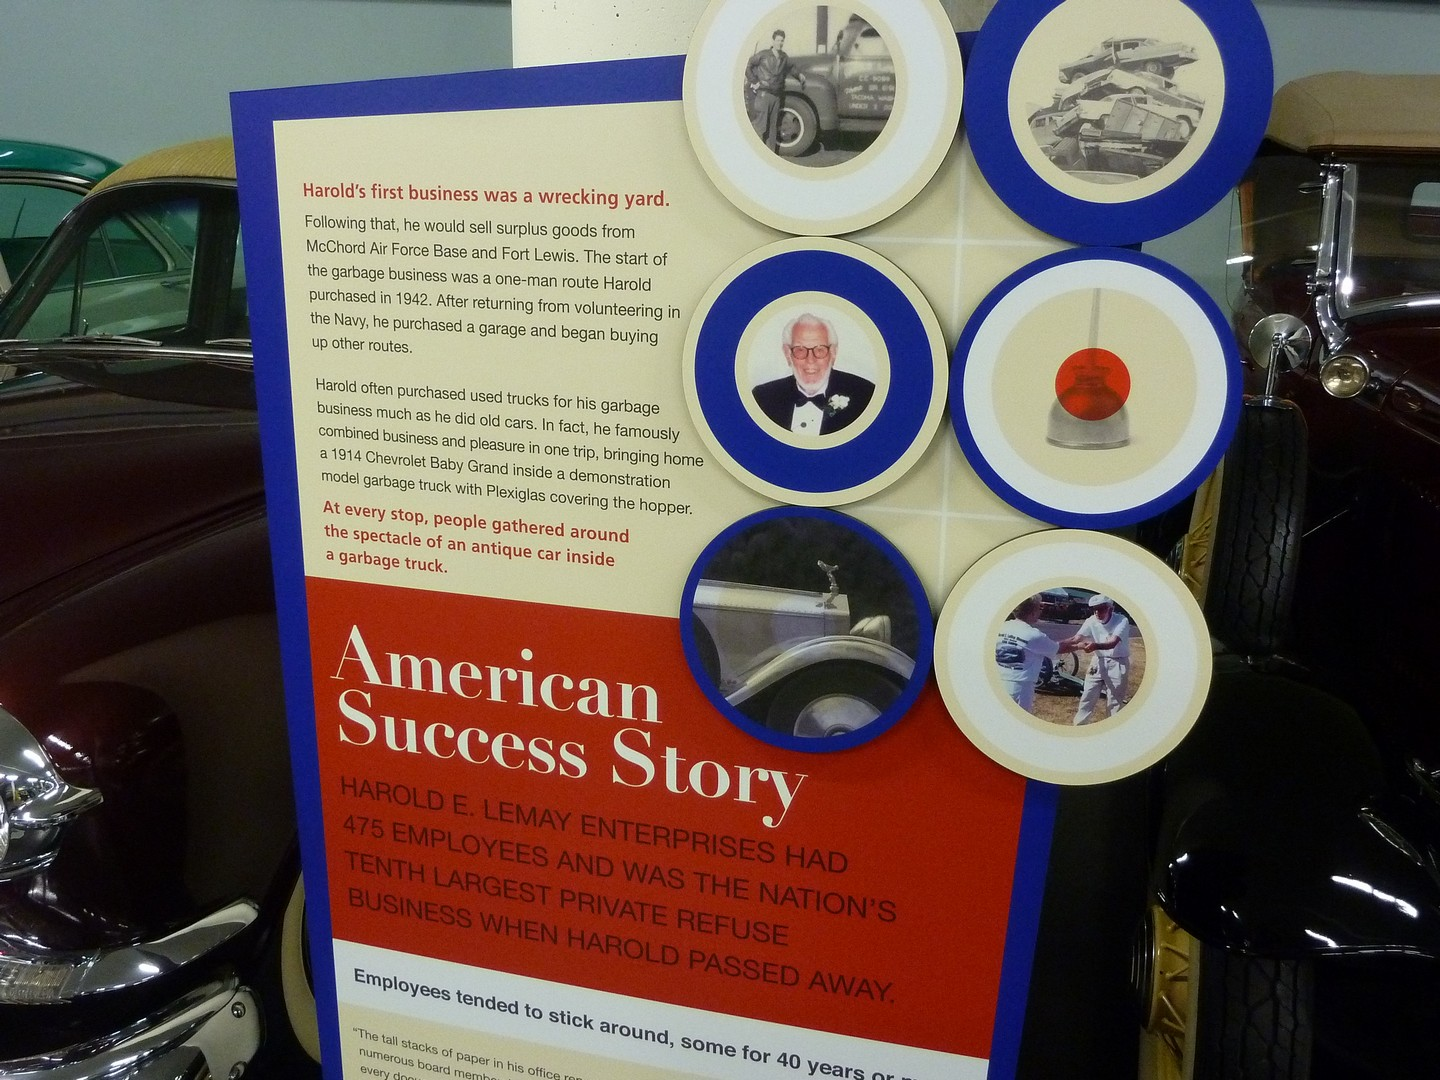 Exhibit poster talking about Harold LeMay's history